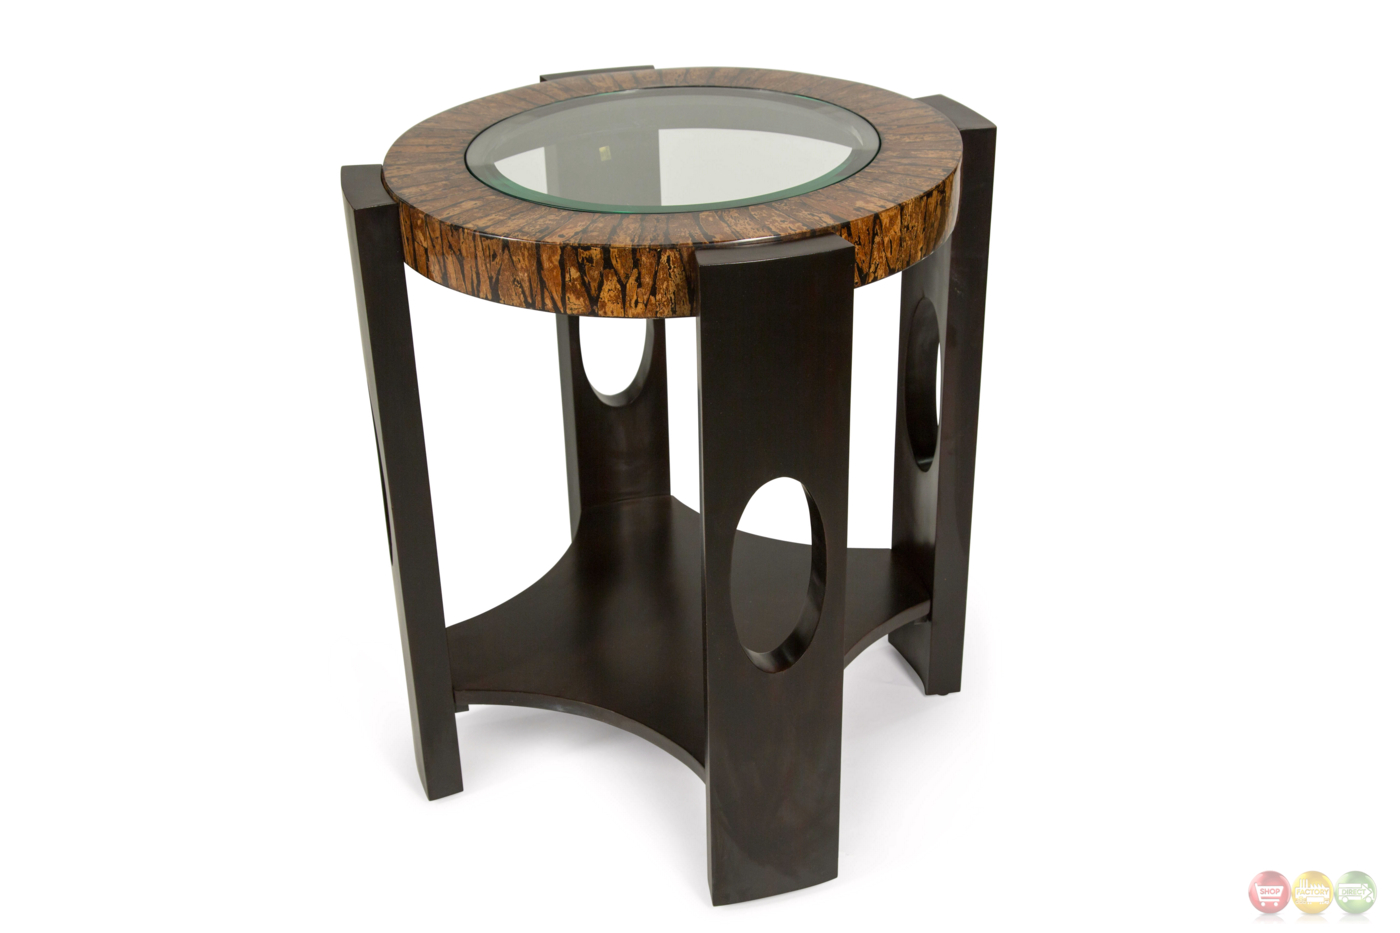 Montecristo Transitional Round End Table With Stone And